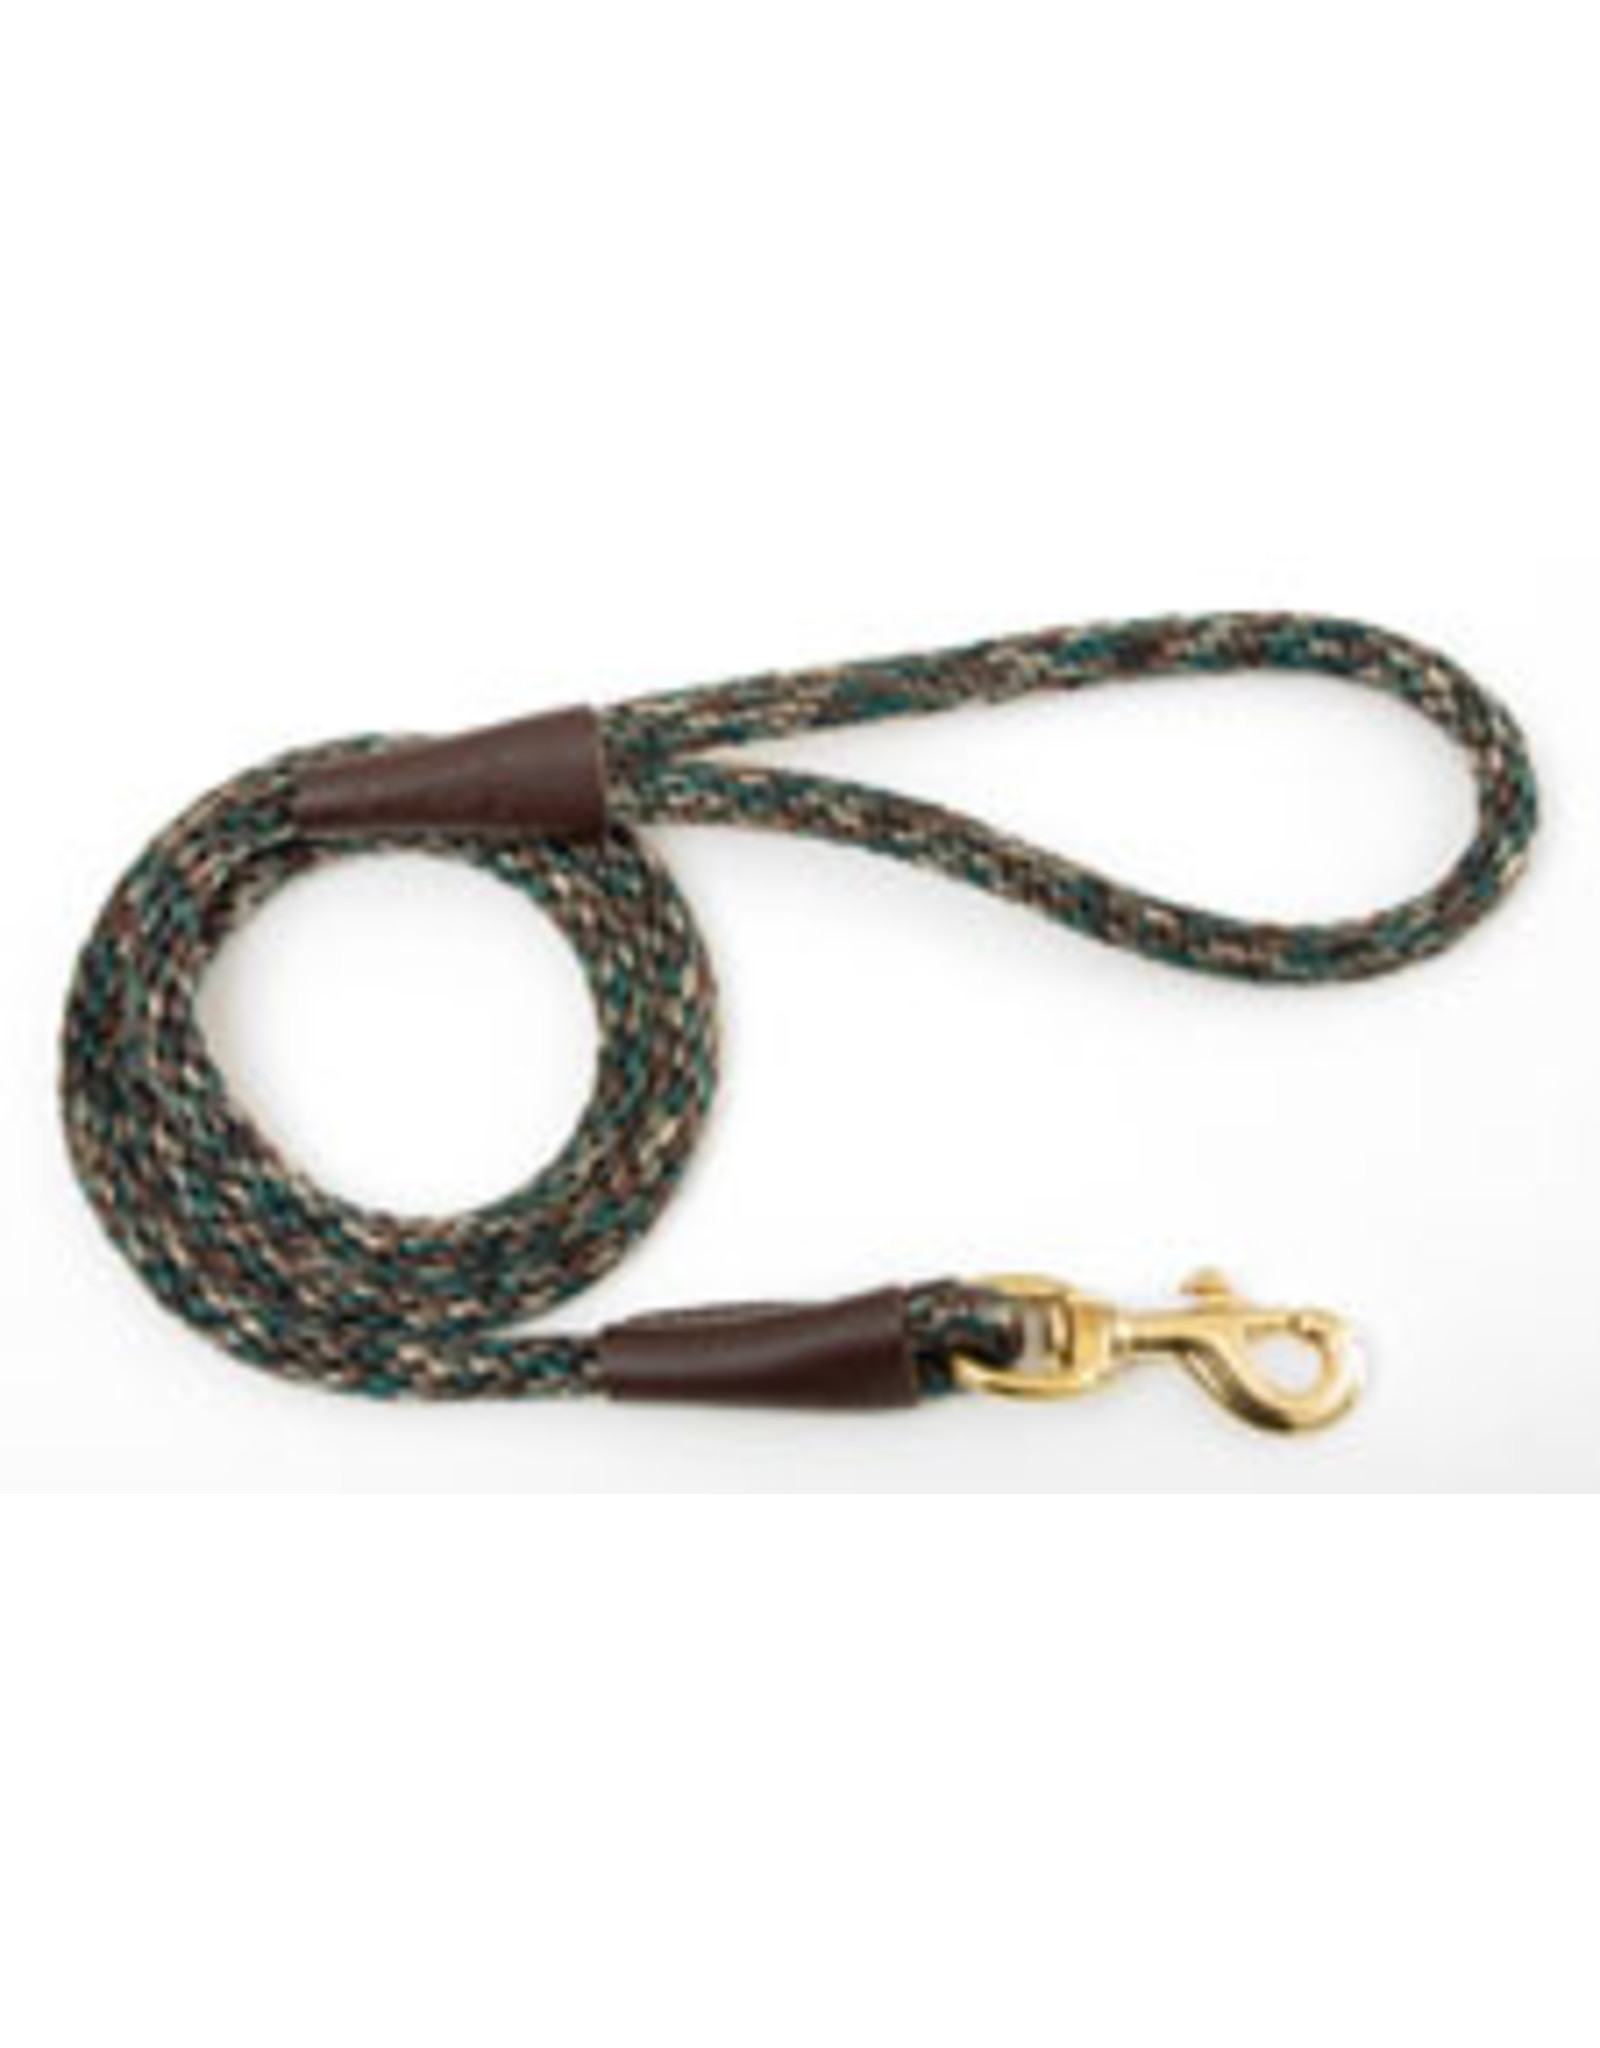 "Mendota Mendota Large Snap Leash CAMO 1/2"" x6'"